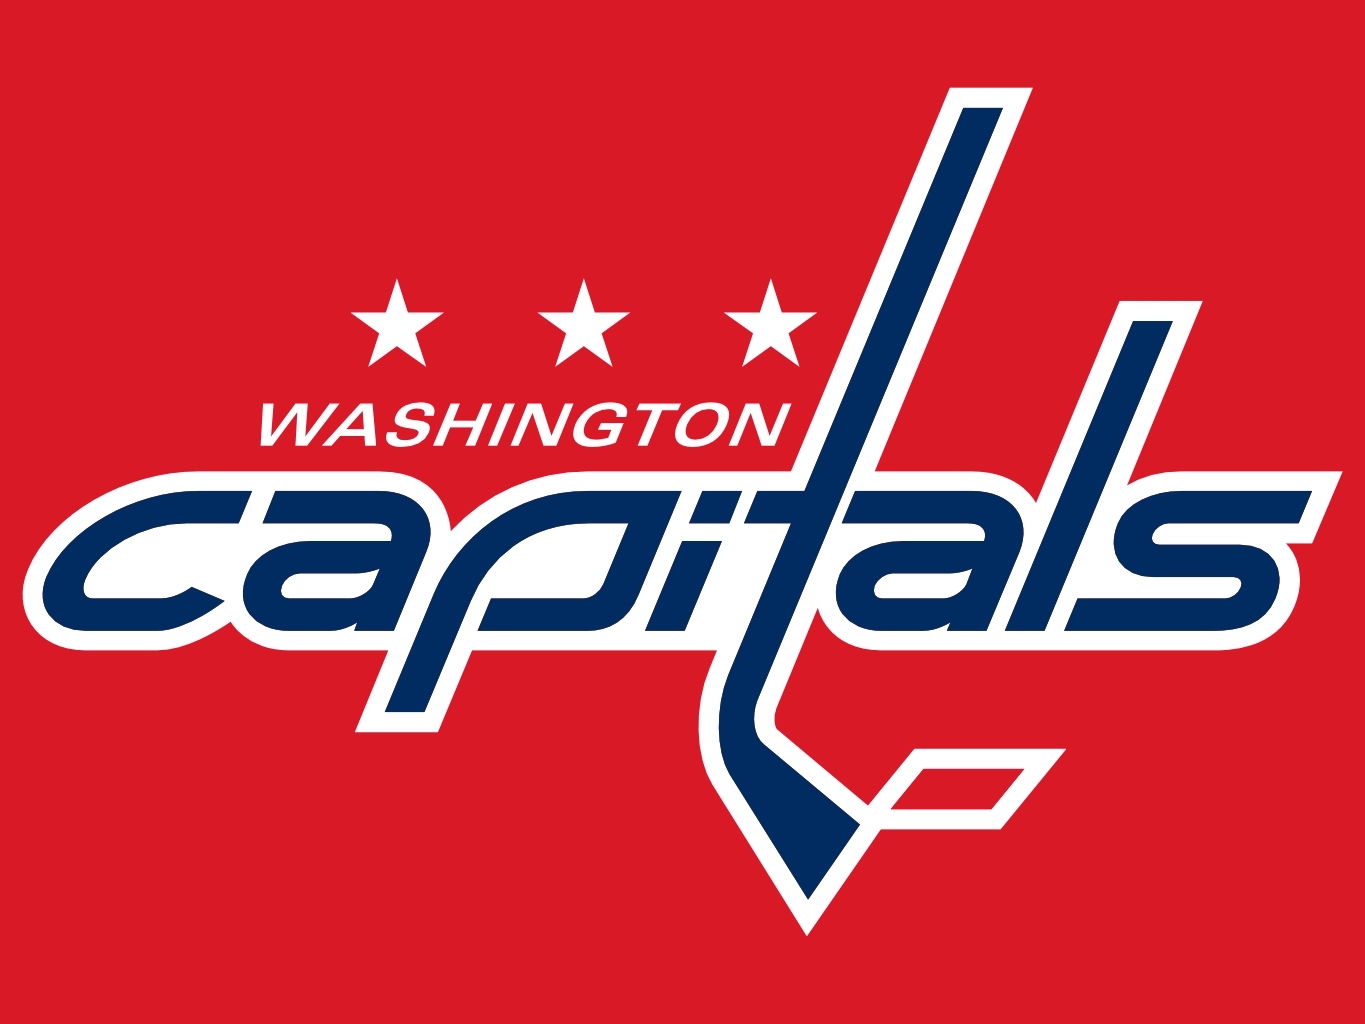 Washington Capitals (NHL) Game Schedule, TV Listings ...